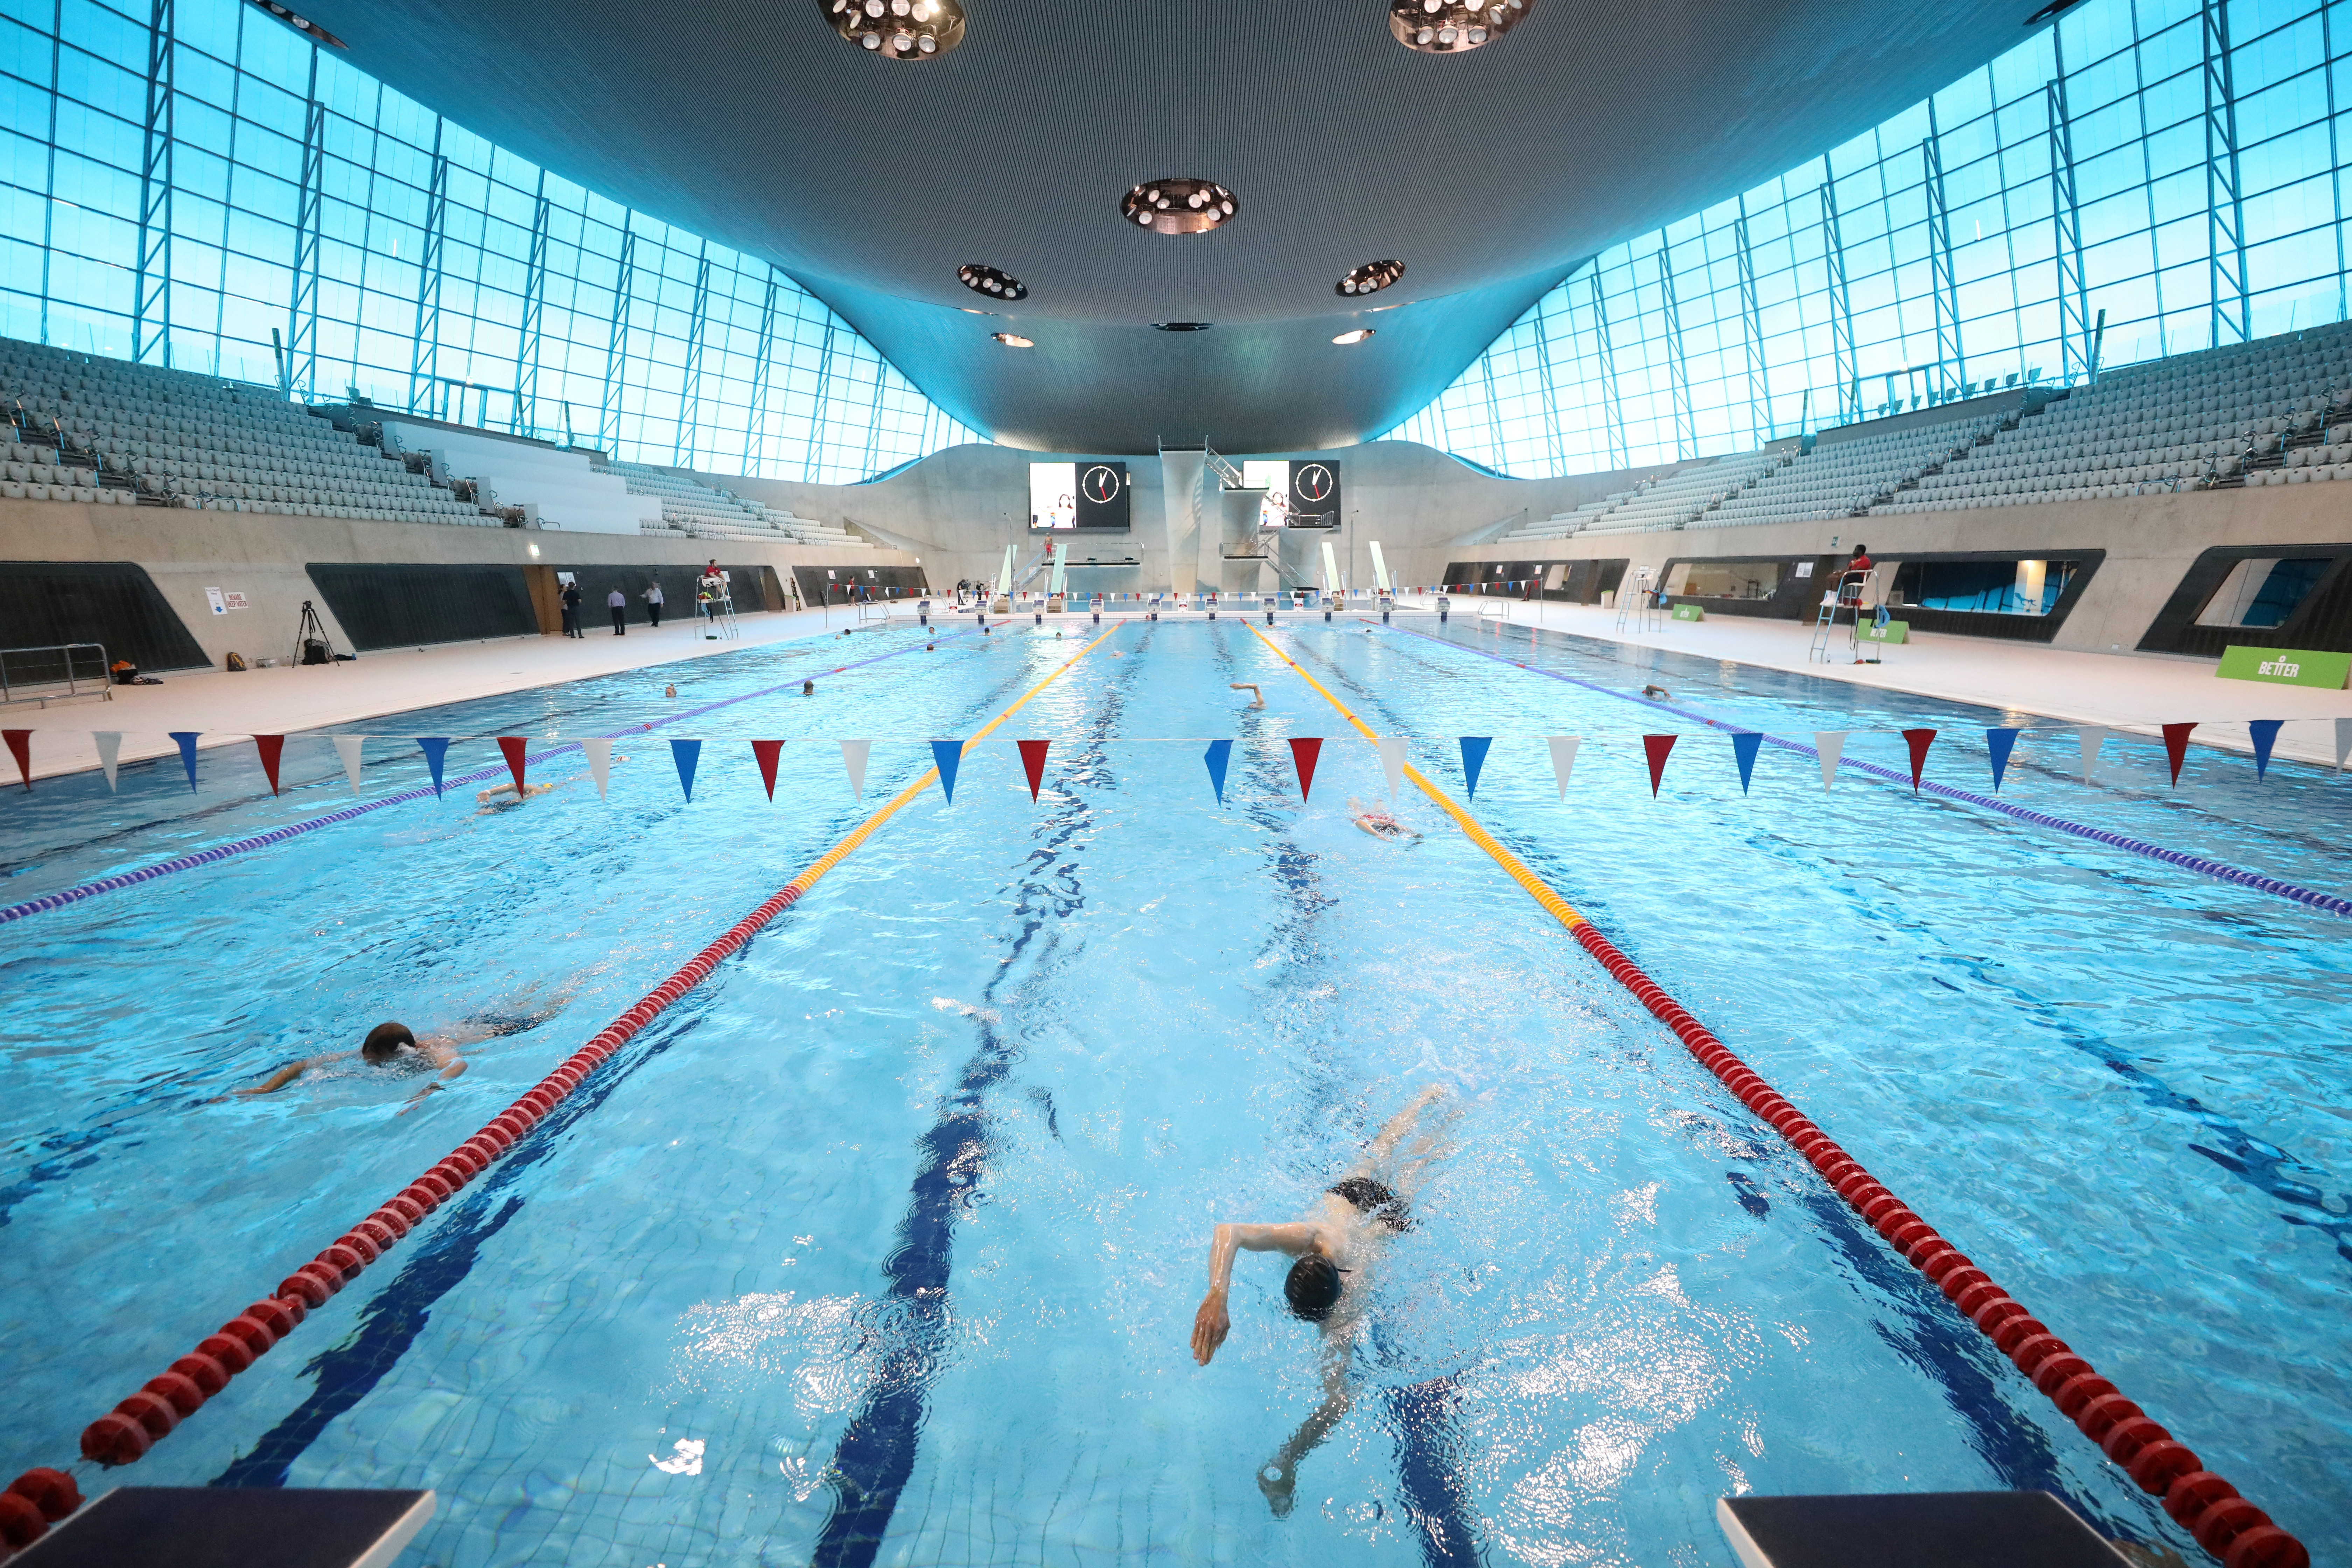 People swim at the London aquatics centre following the reopening of swimming pools as the spread of the coronavirus disease (COVID-19) continues, in London, Britain, July 25, 2020. REUTERS/Simon Dawson     TPX IMAGES OF THE DAY - RC2C0I98JKD7